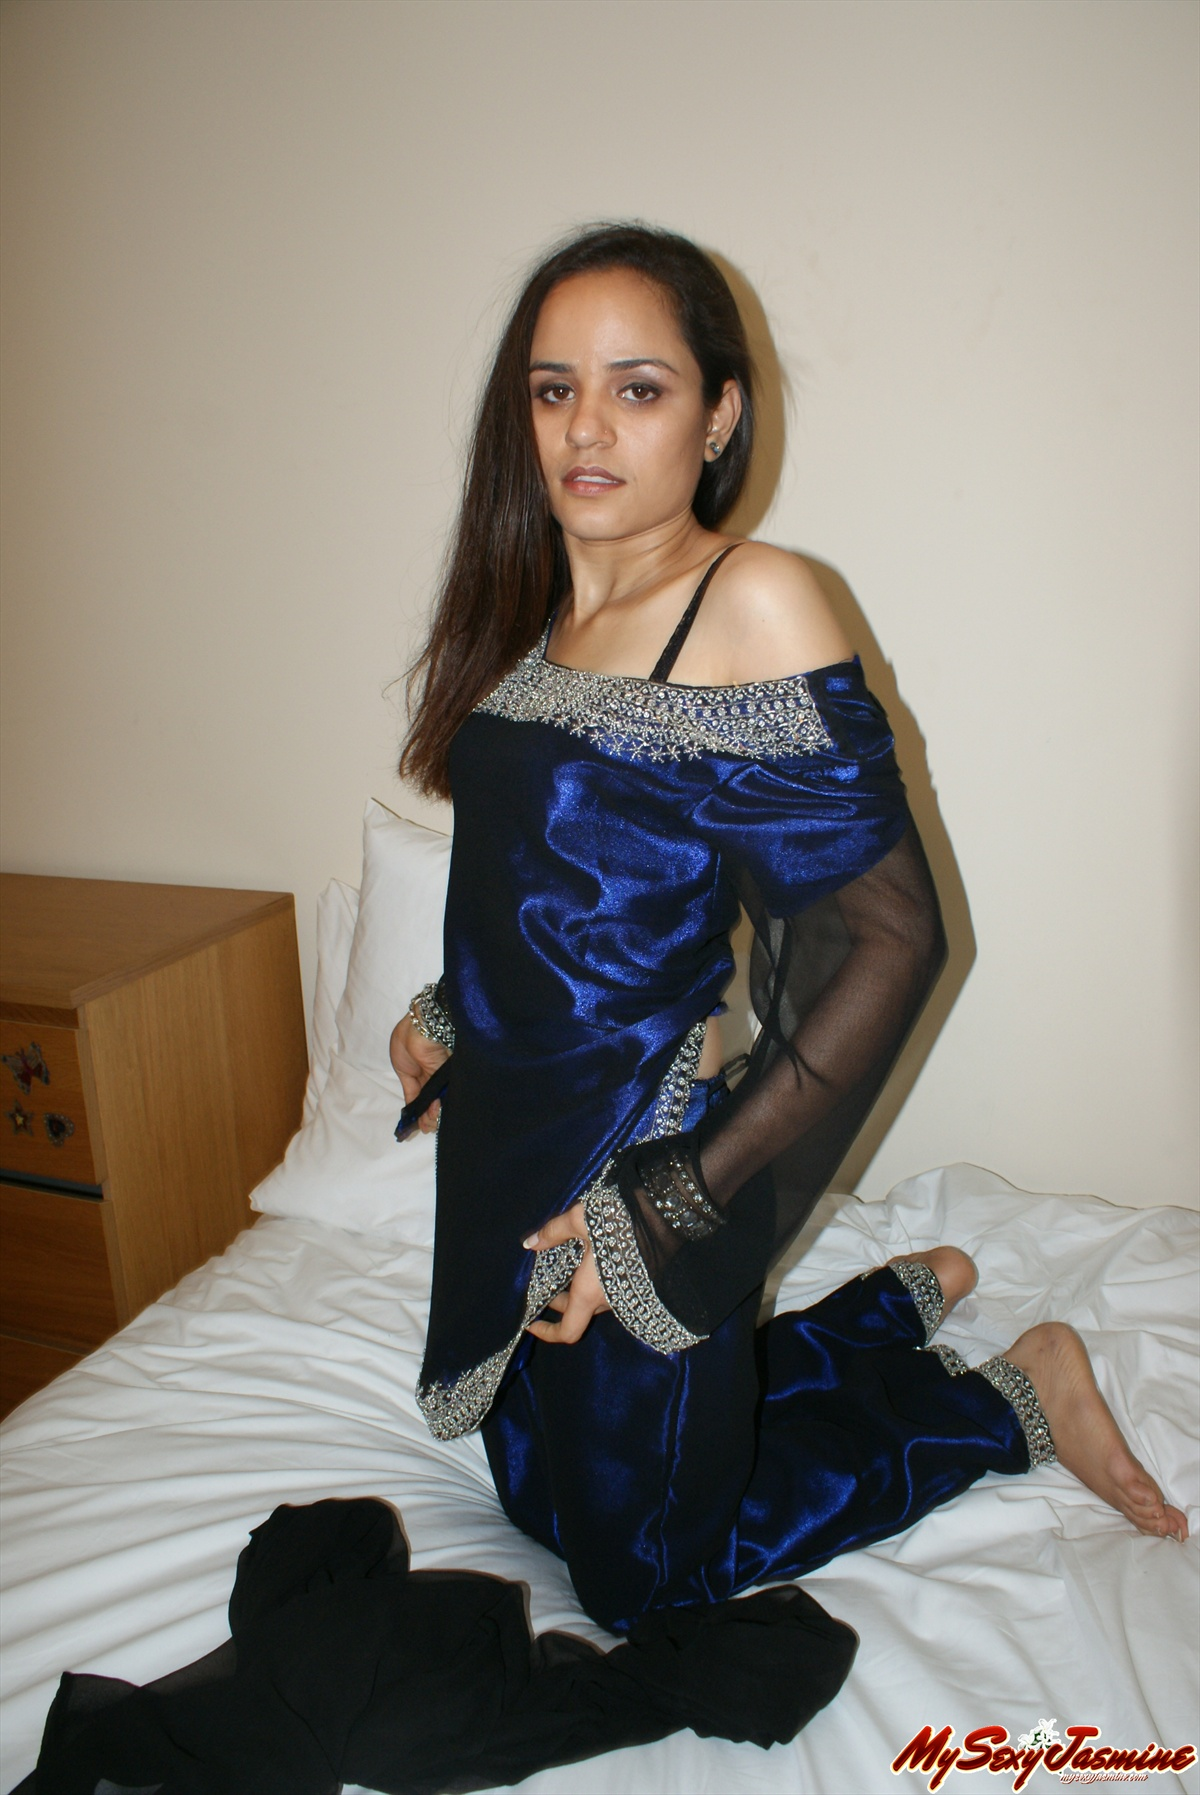 Pic gal 005. Jasmine in excited blue indian outfits after party changing